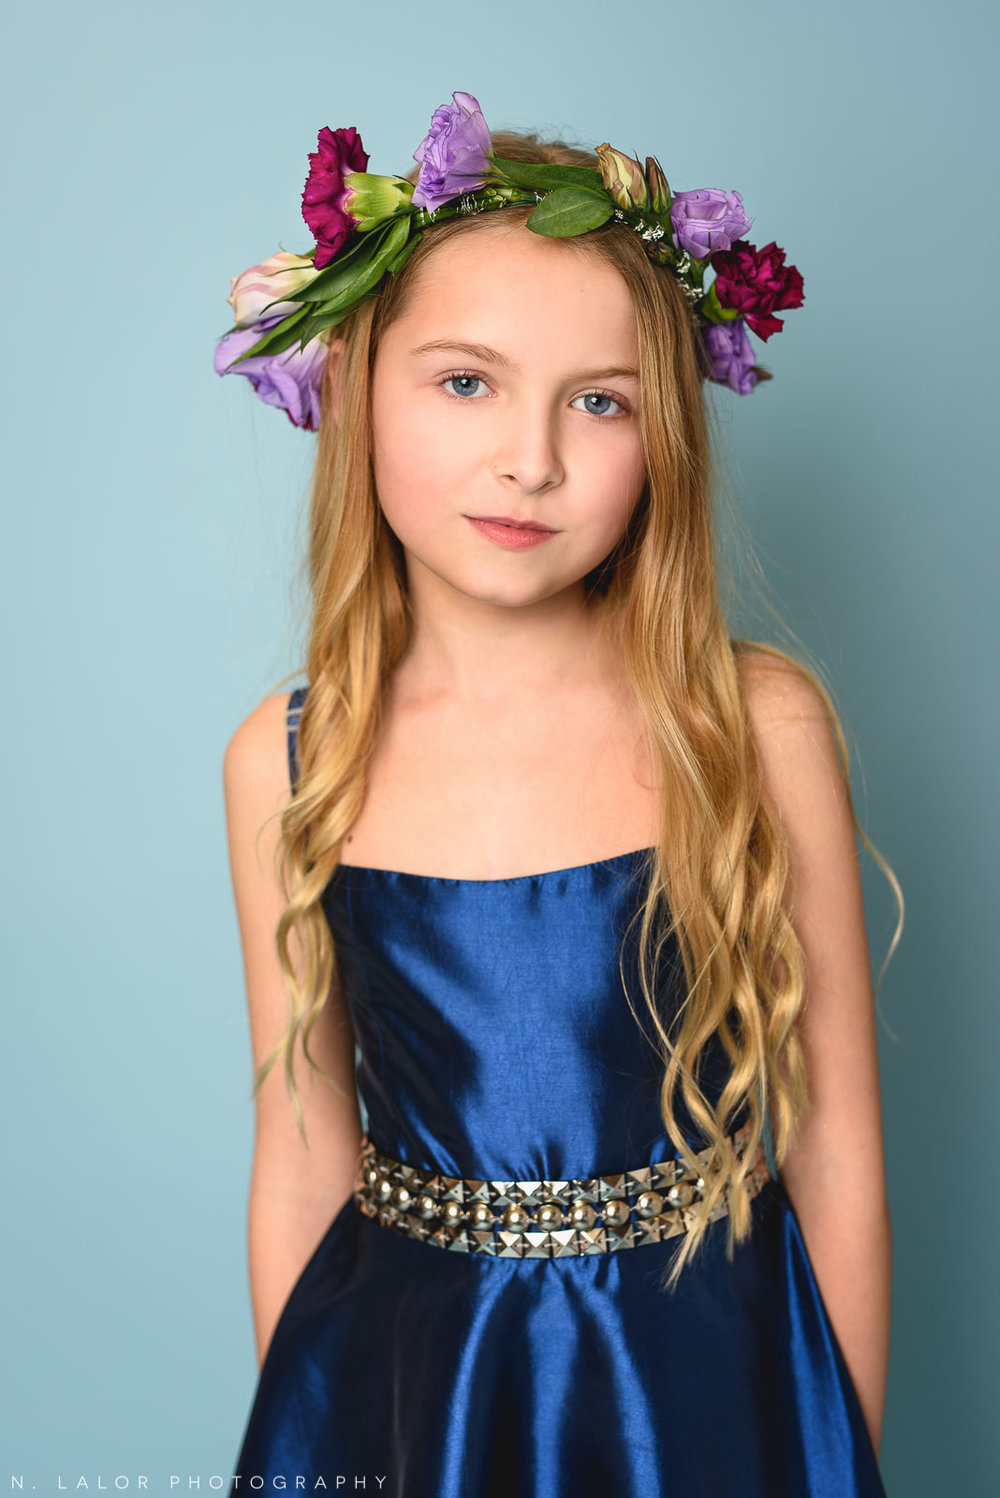 Rich blue Stella M'Lia dress with a flower crown. Tween girl fashion portrait by N. Lalor Photography. New Canaan, Connecticut.